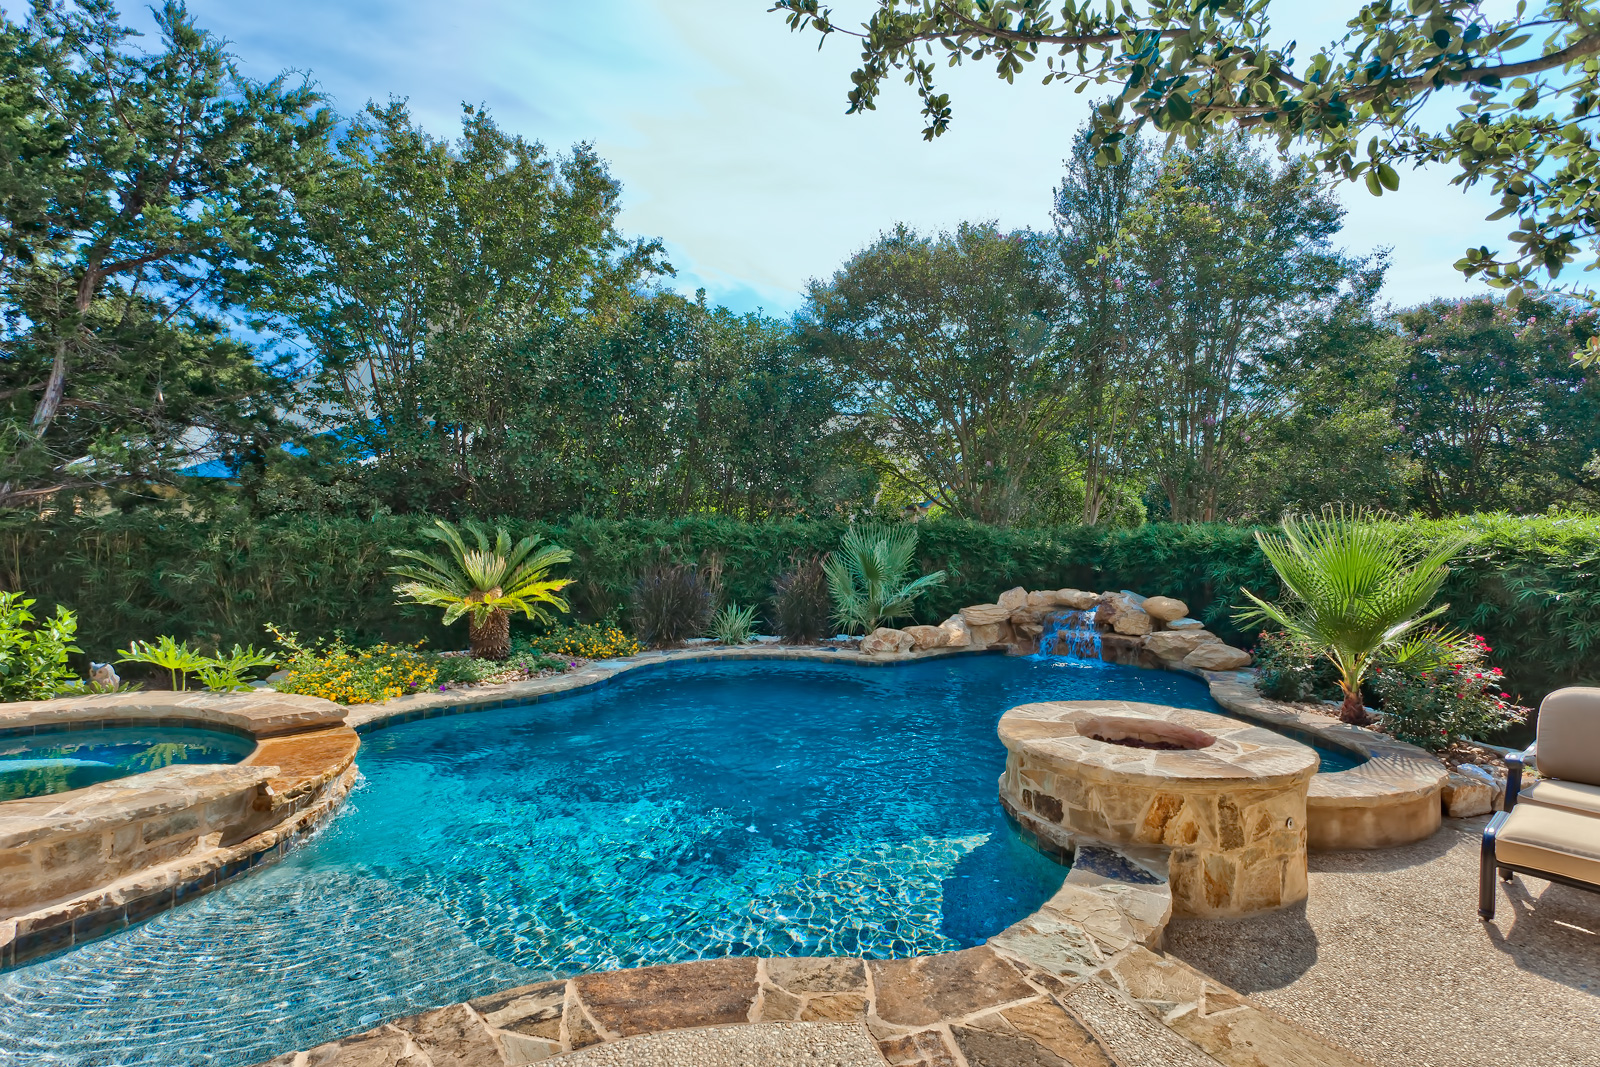 View Our Pool Design Gallery